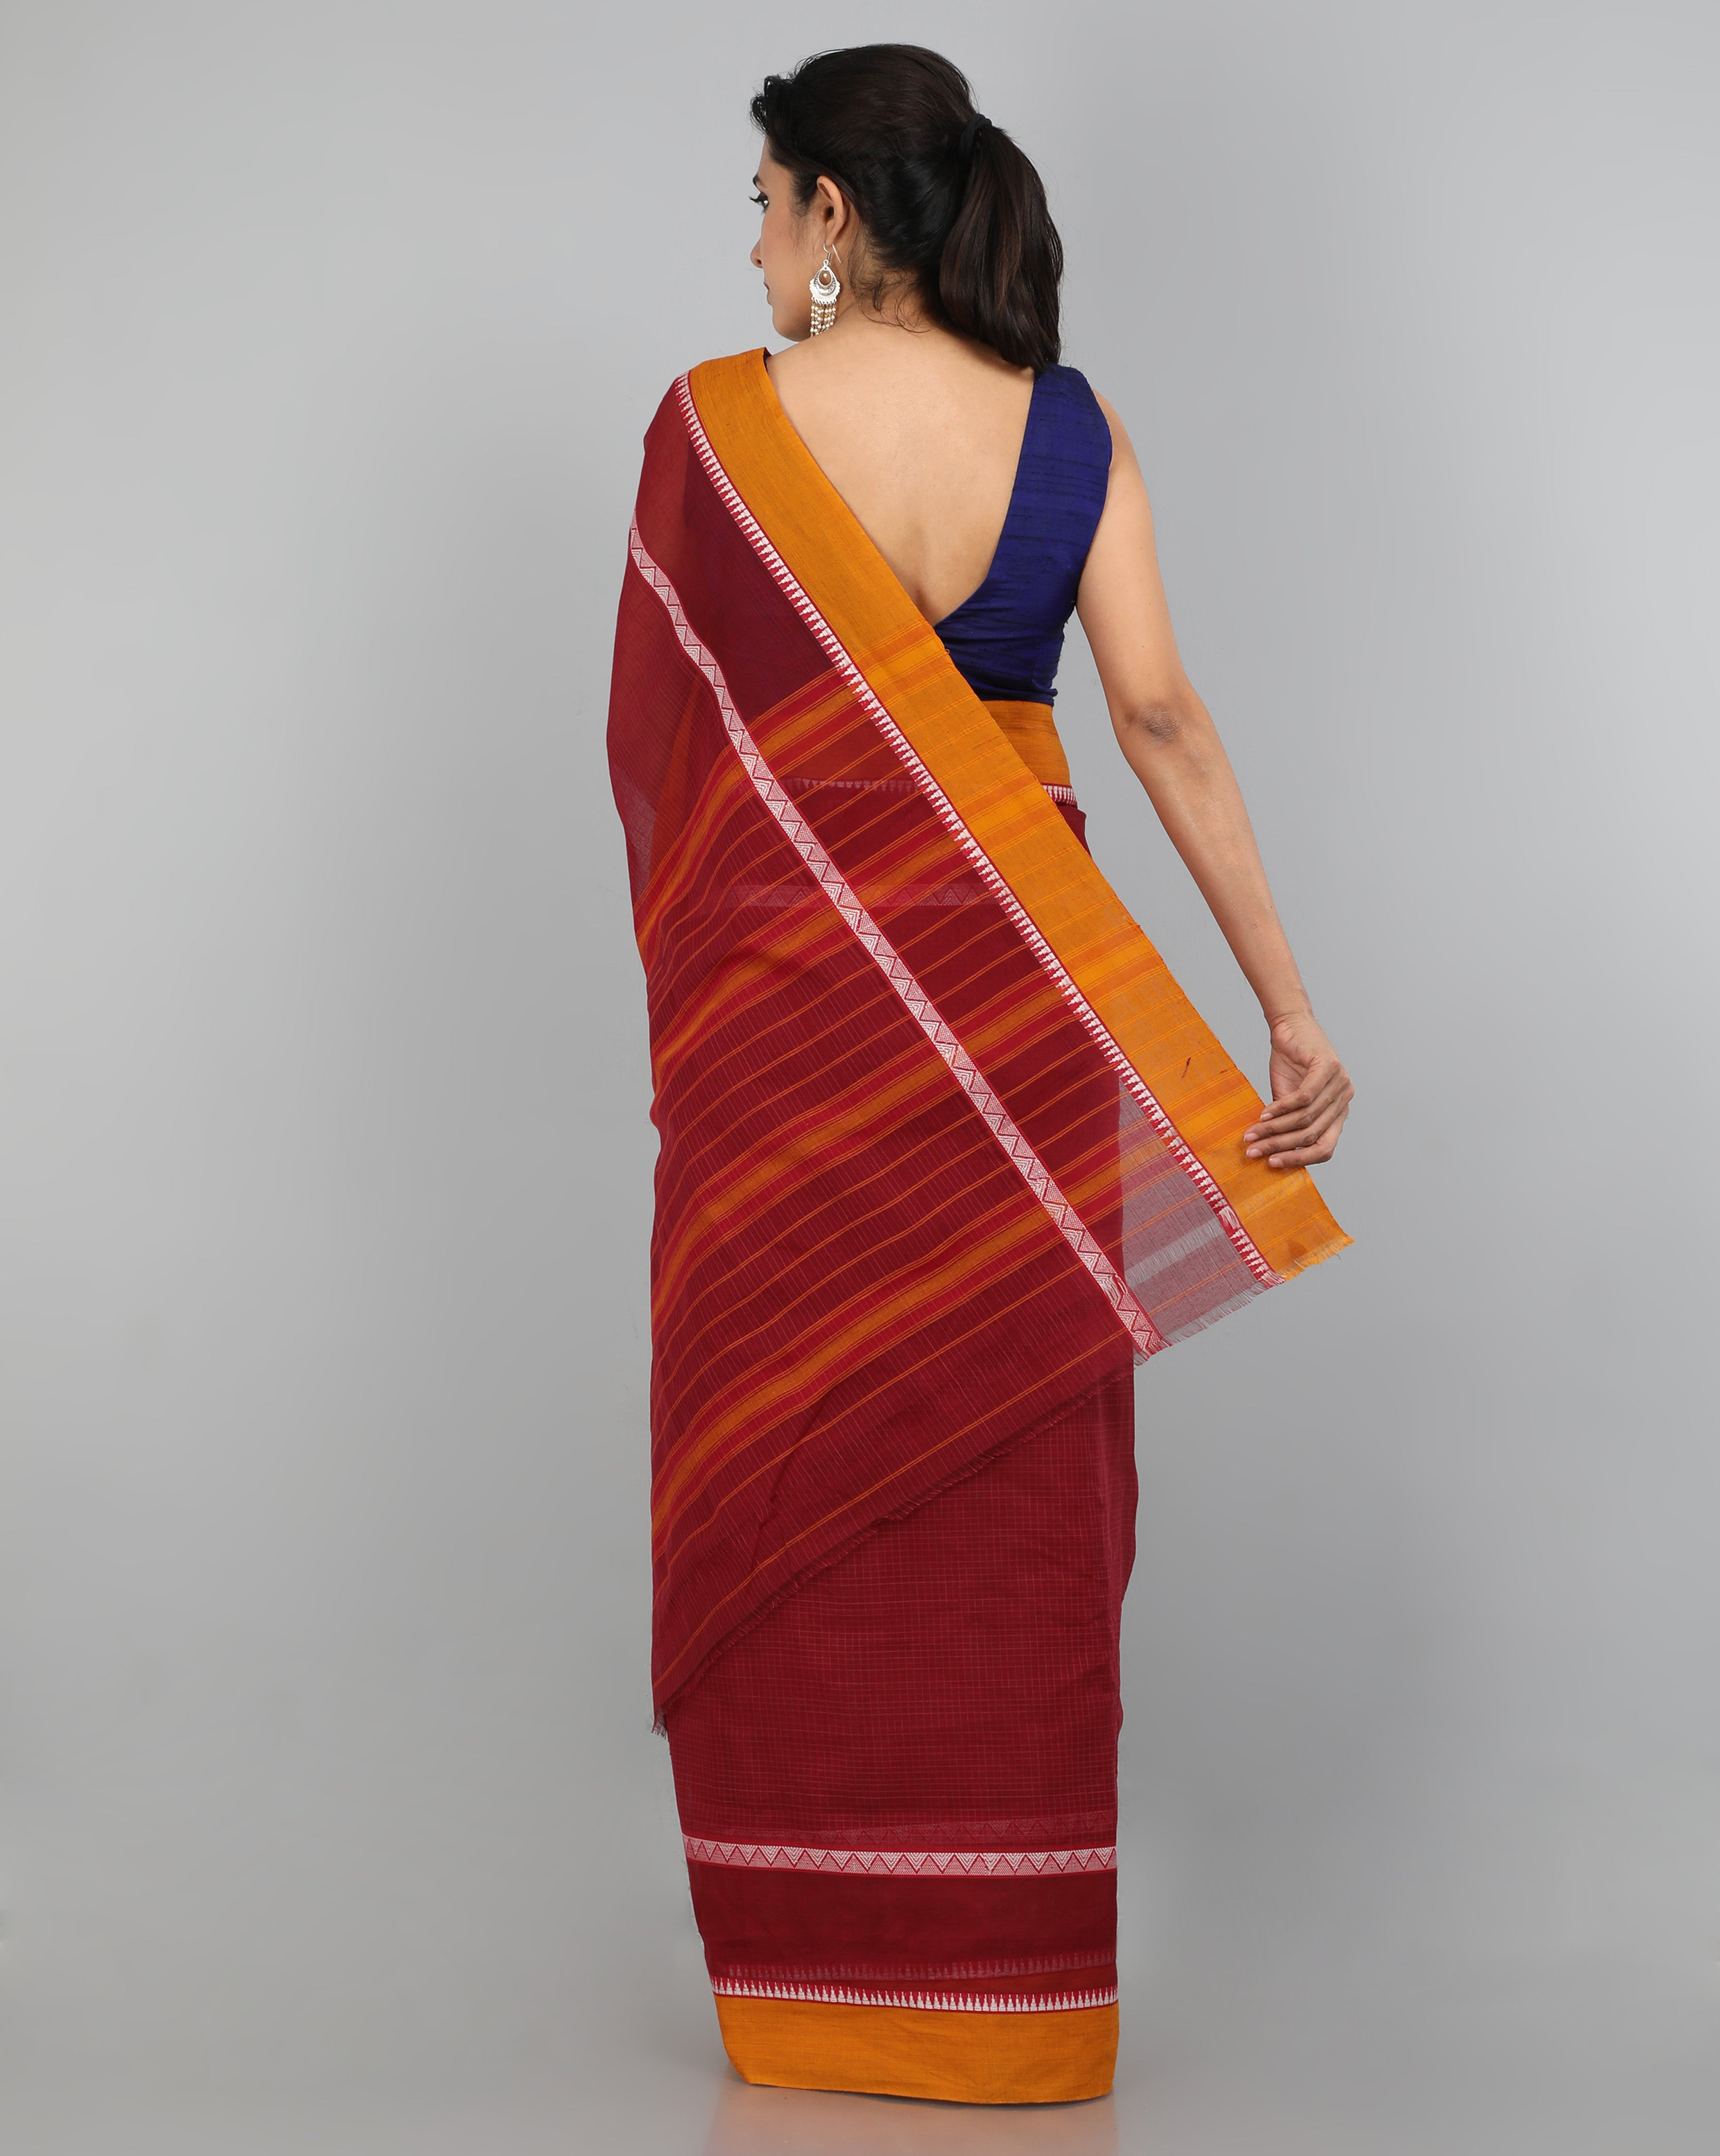 Narayanapet Cotton Saree - Maroon